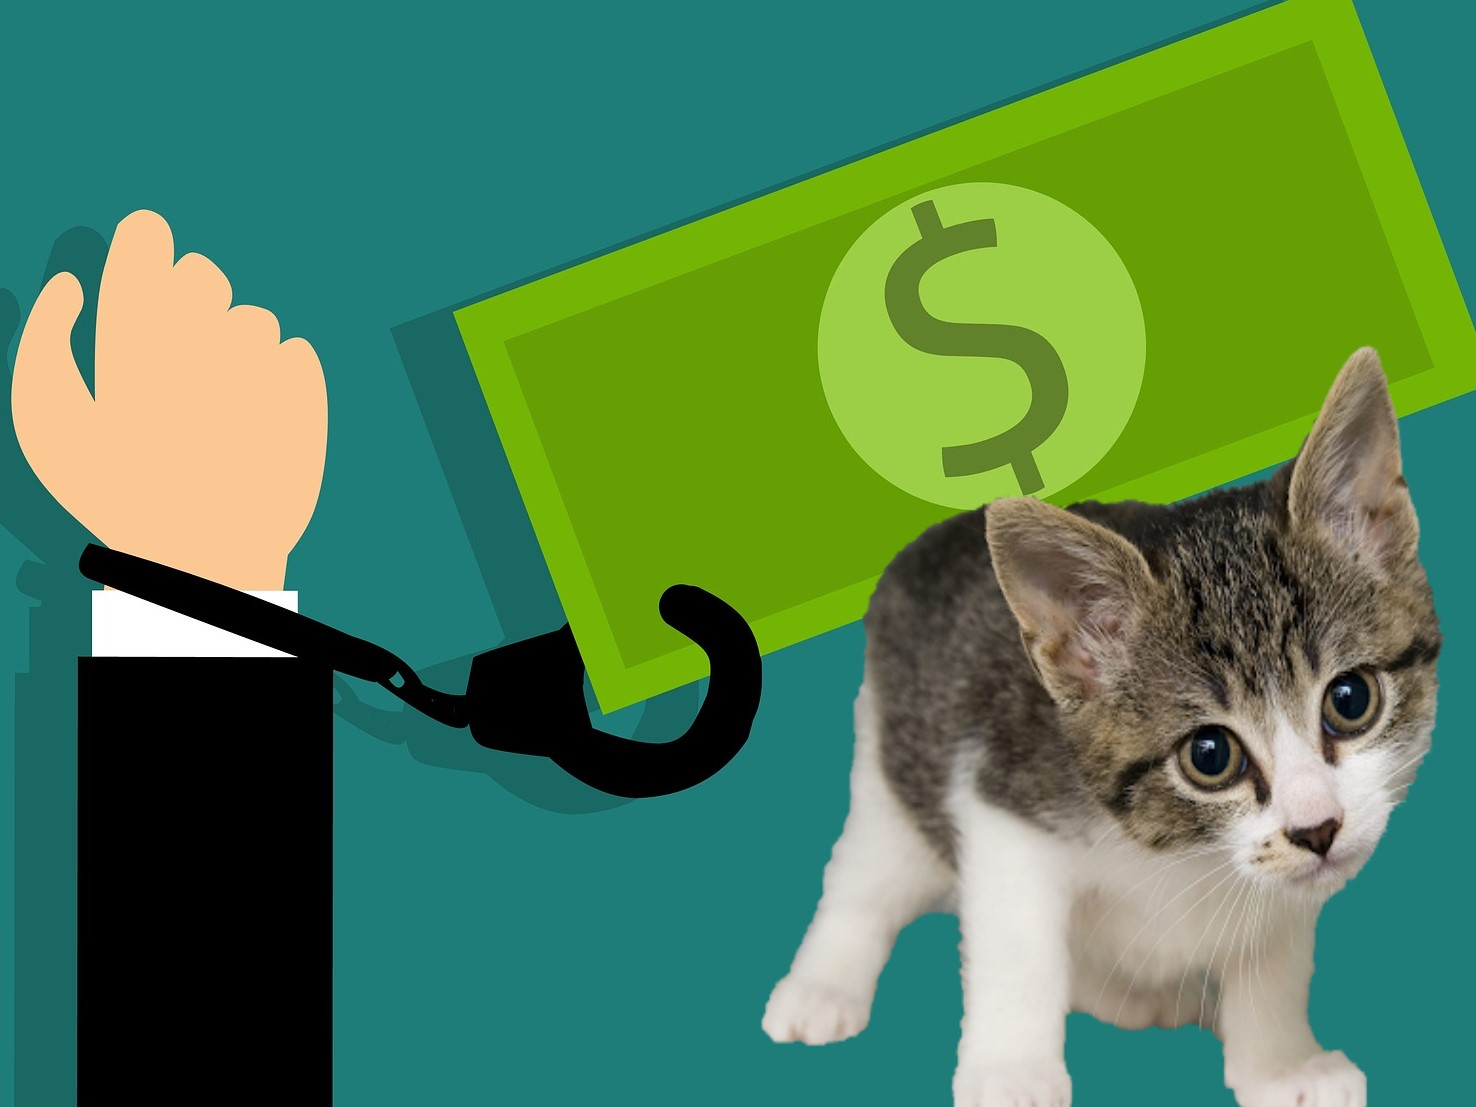 Debt can no longer be enforced by officials by using a companion animal as leverage in Russia